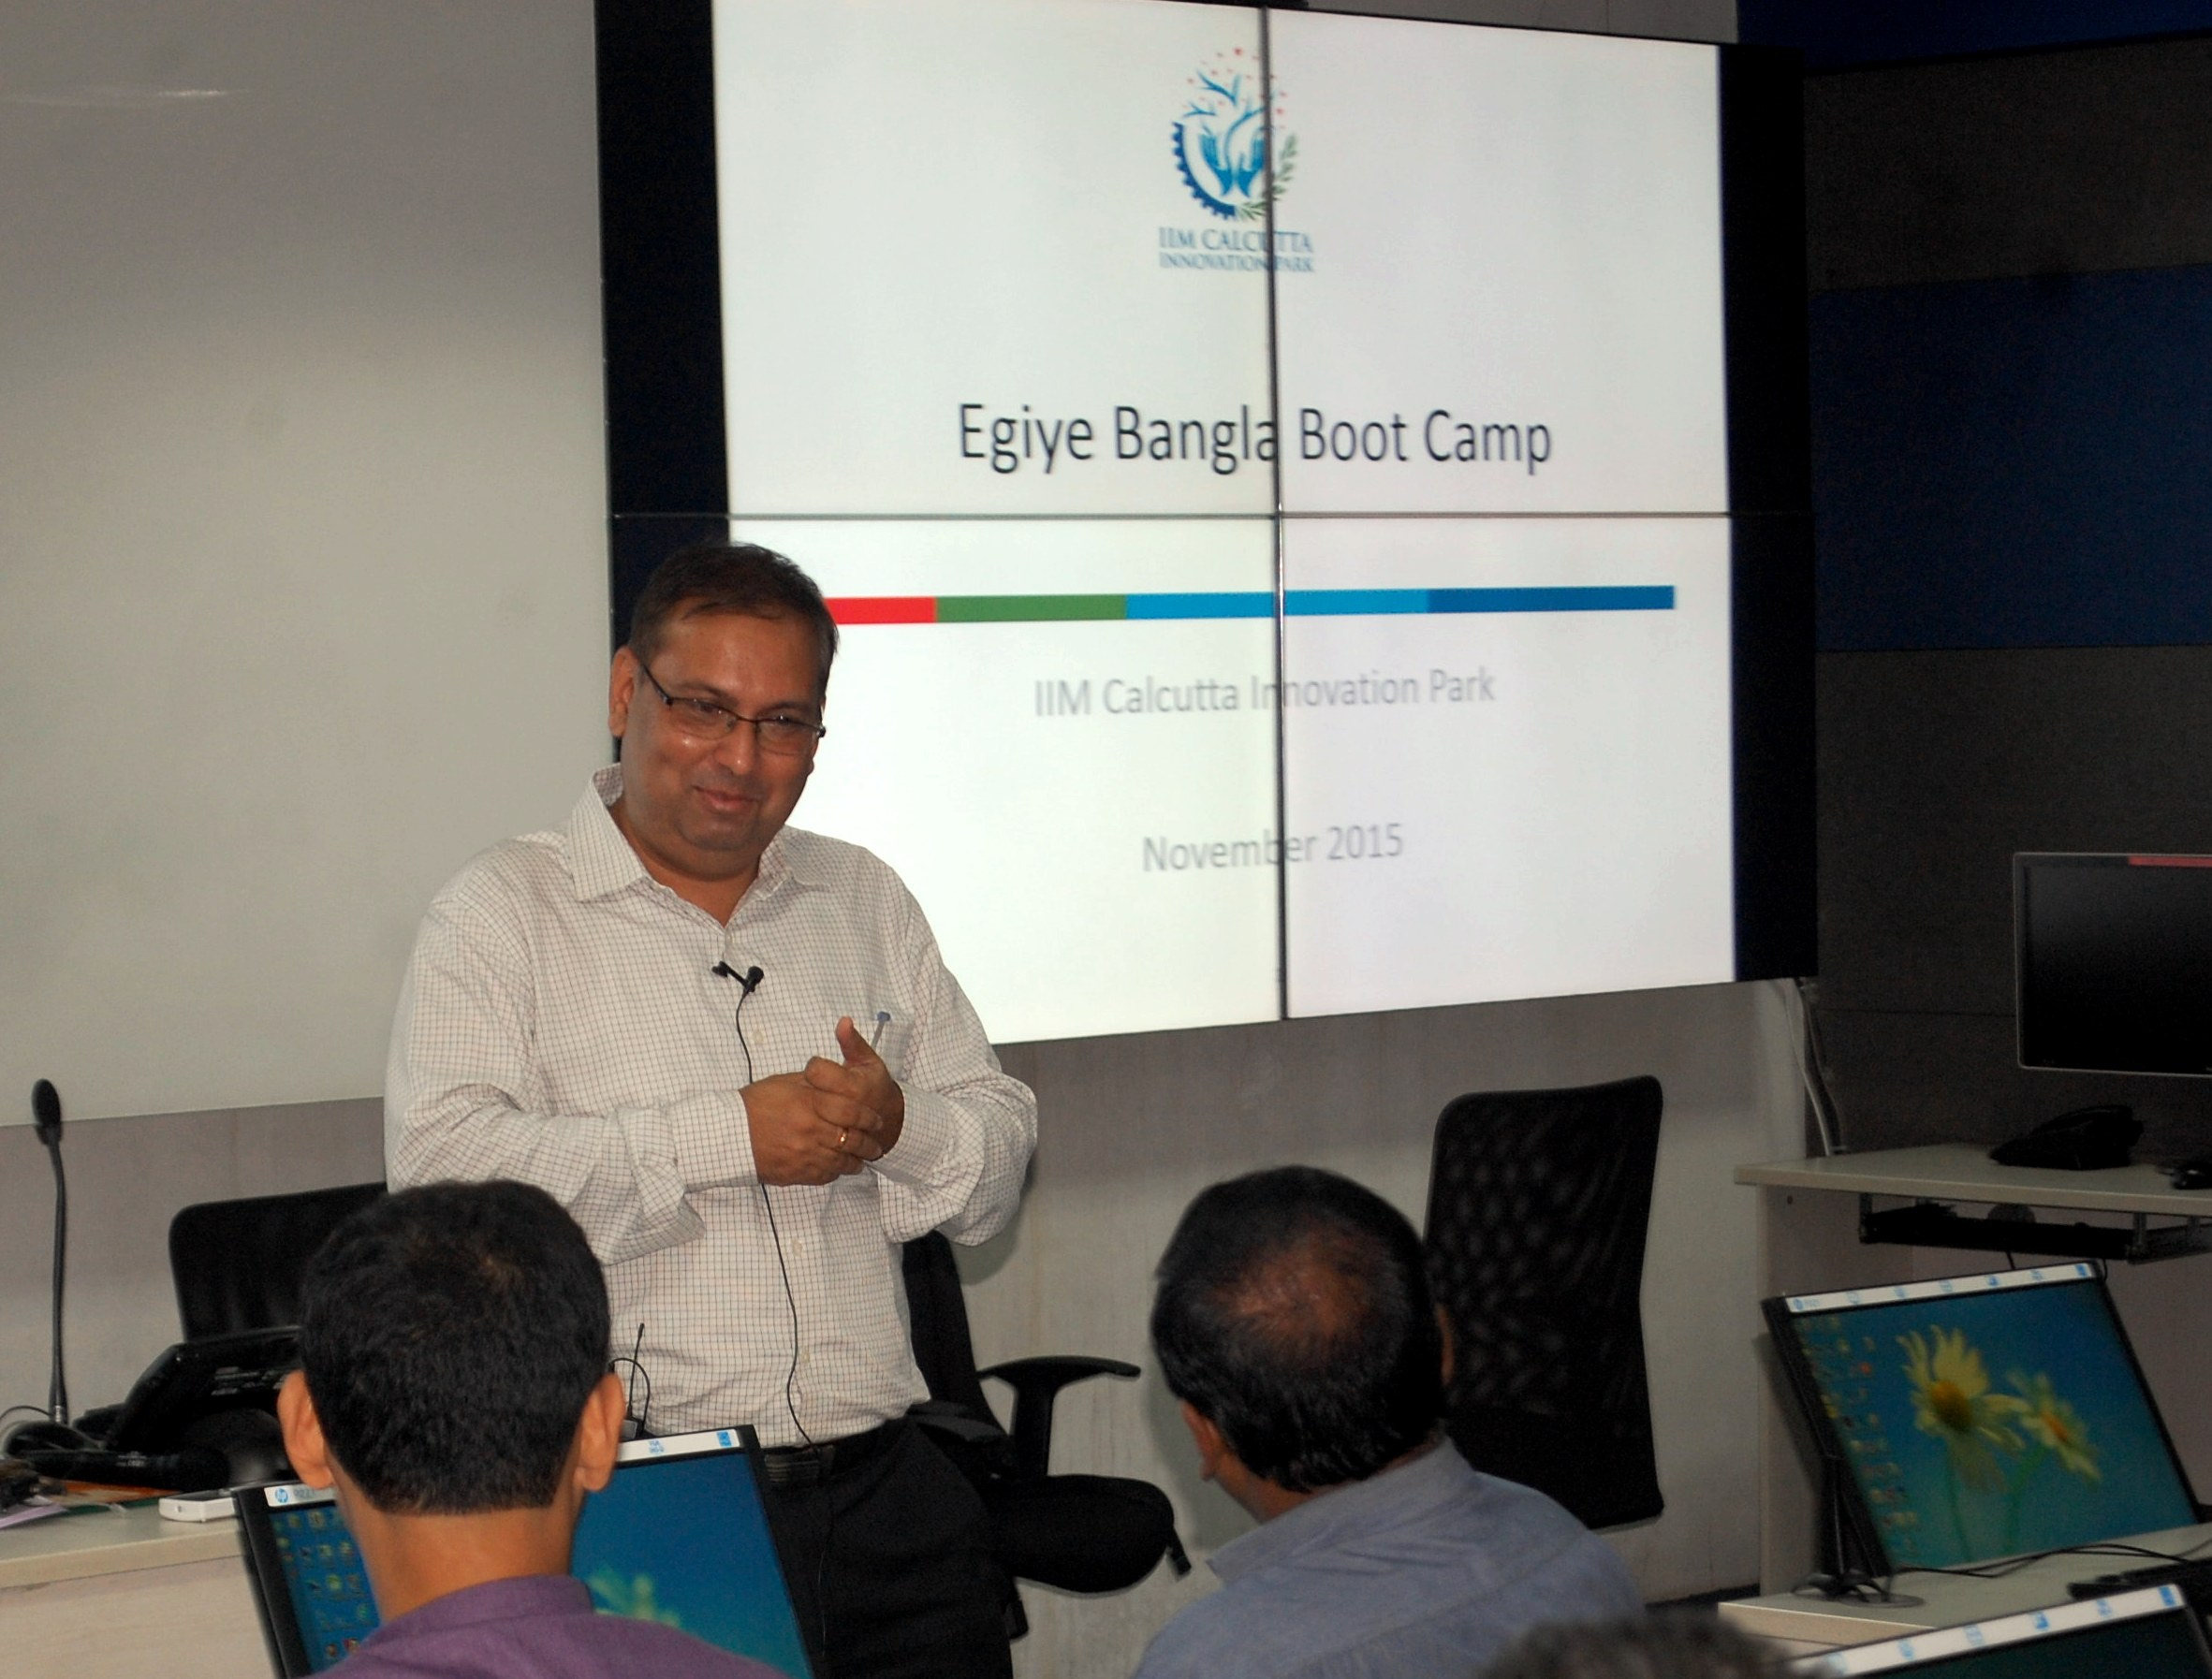 Egiye Bangla boot camp @ IIMC